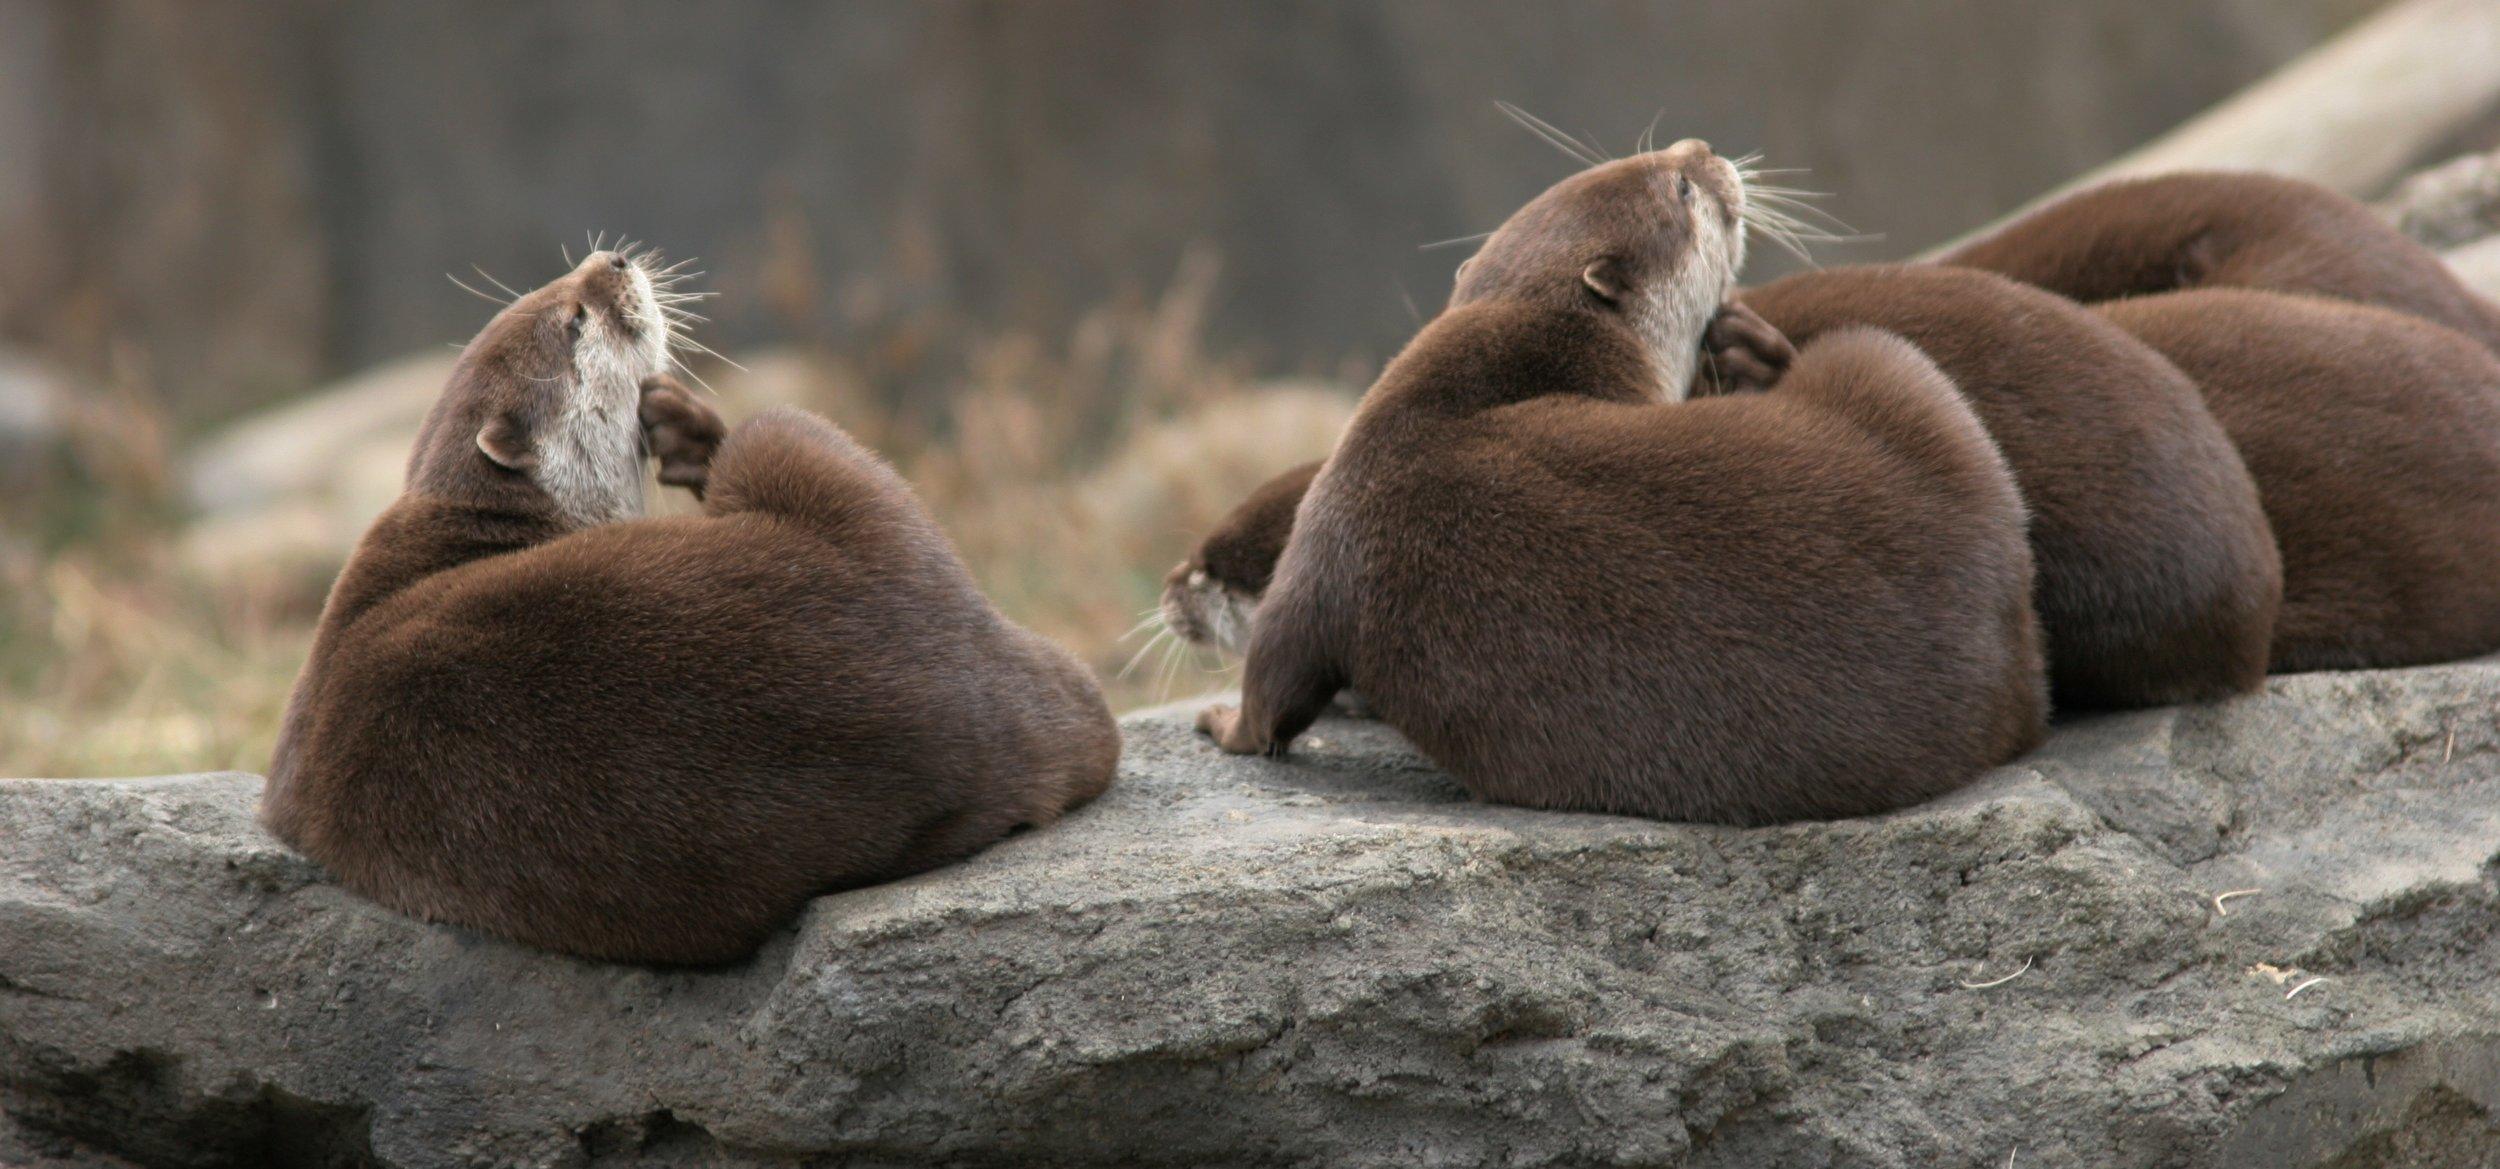 These Otters Are Synchronized Scratchers